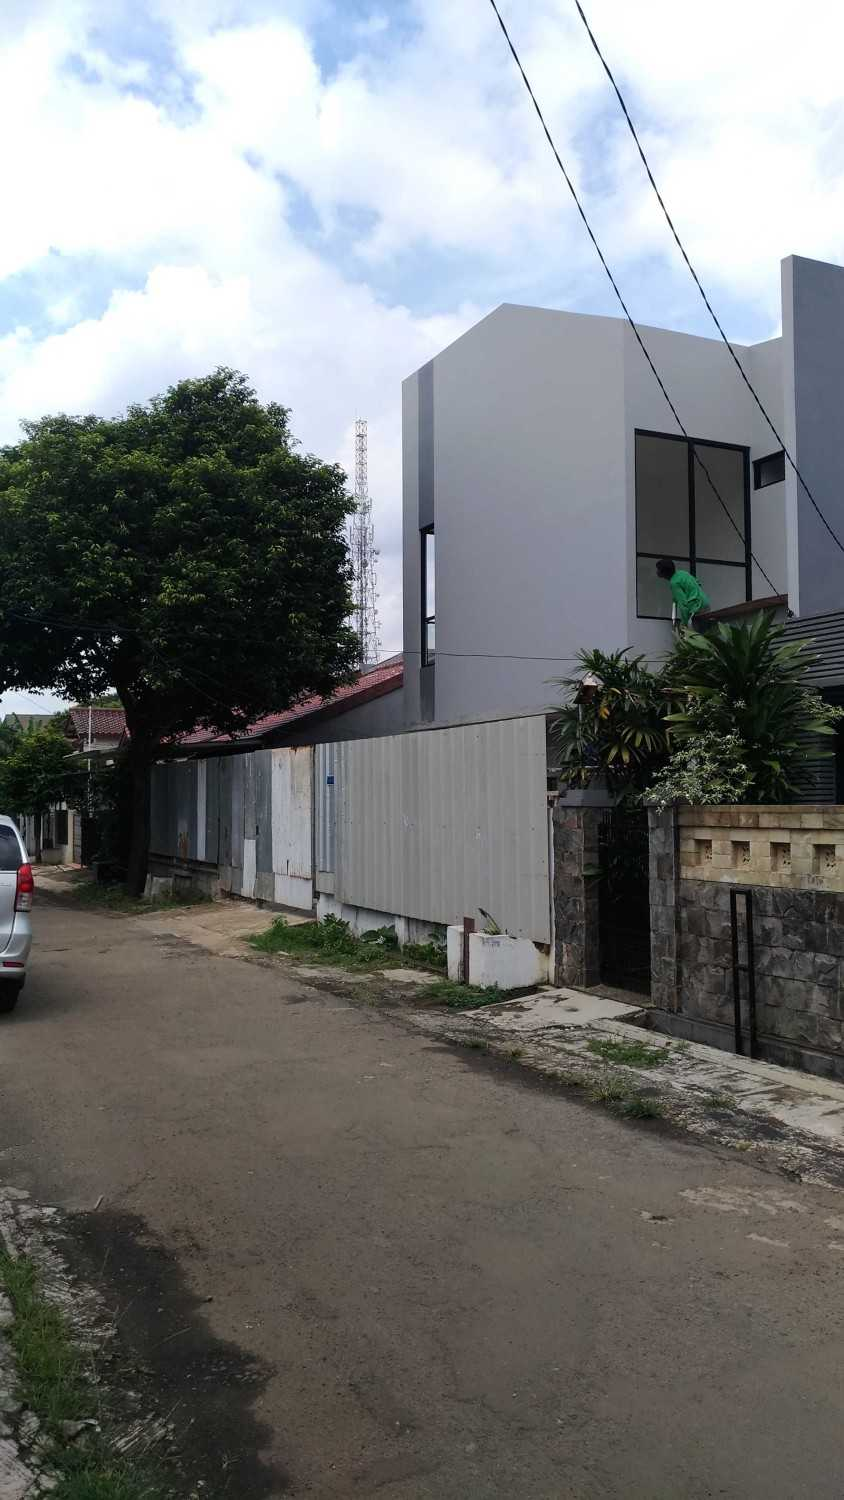 Mahastudio & Partner Renovasi Rumah Beiji Depok City, West Java, Indonesia Depok City, West Java, Indonesia Under Construction Tropis 51335